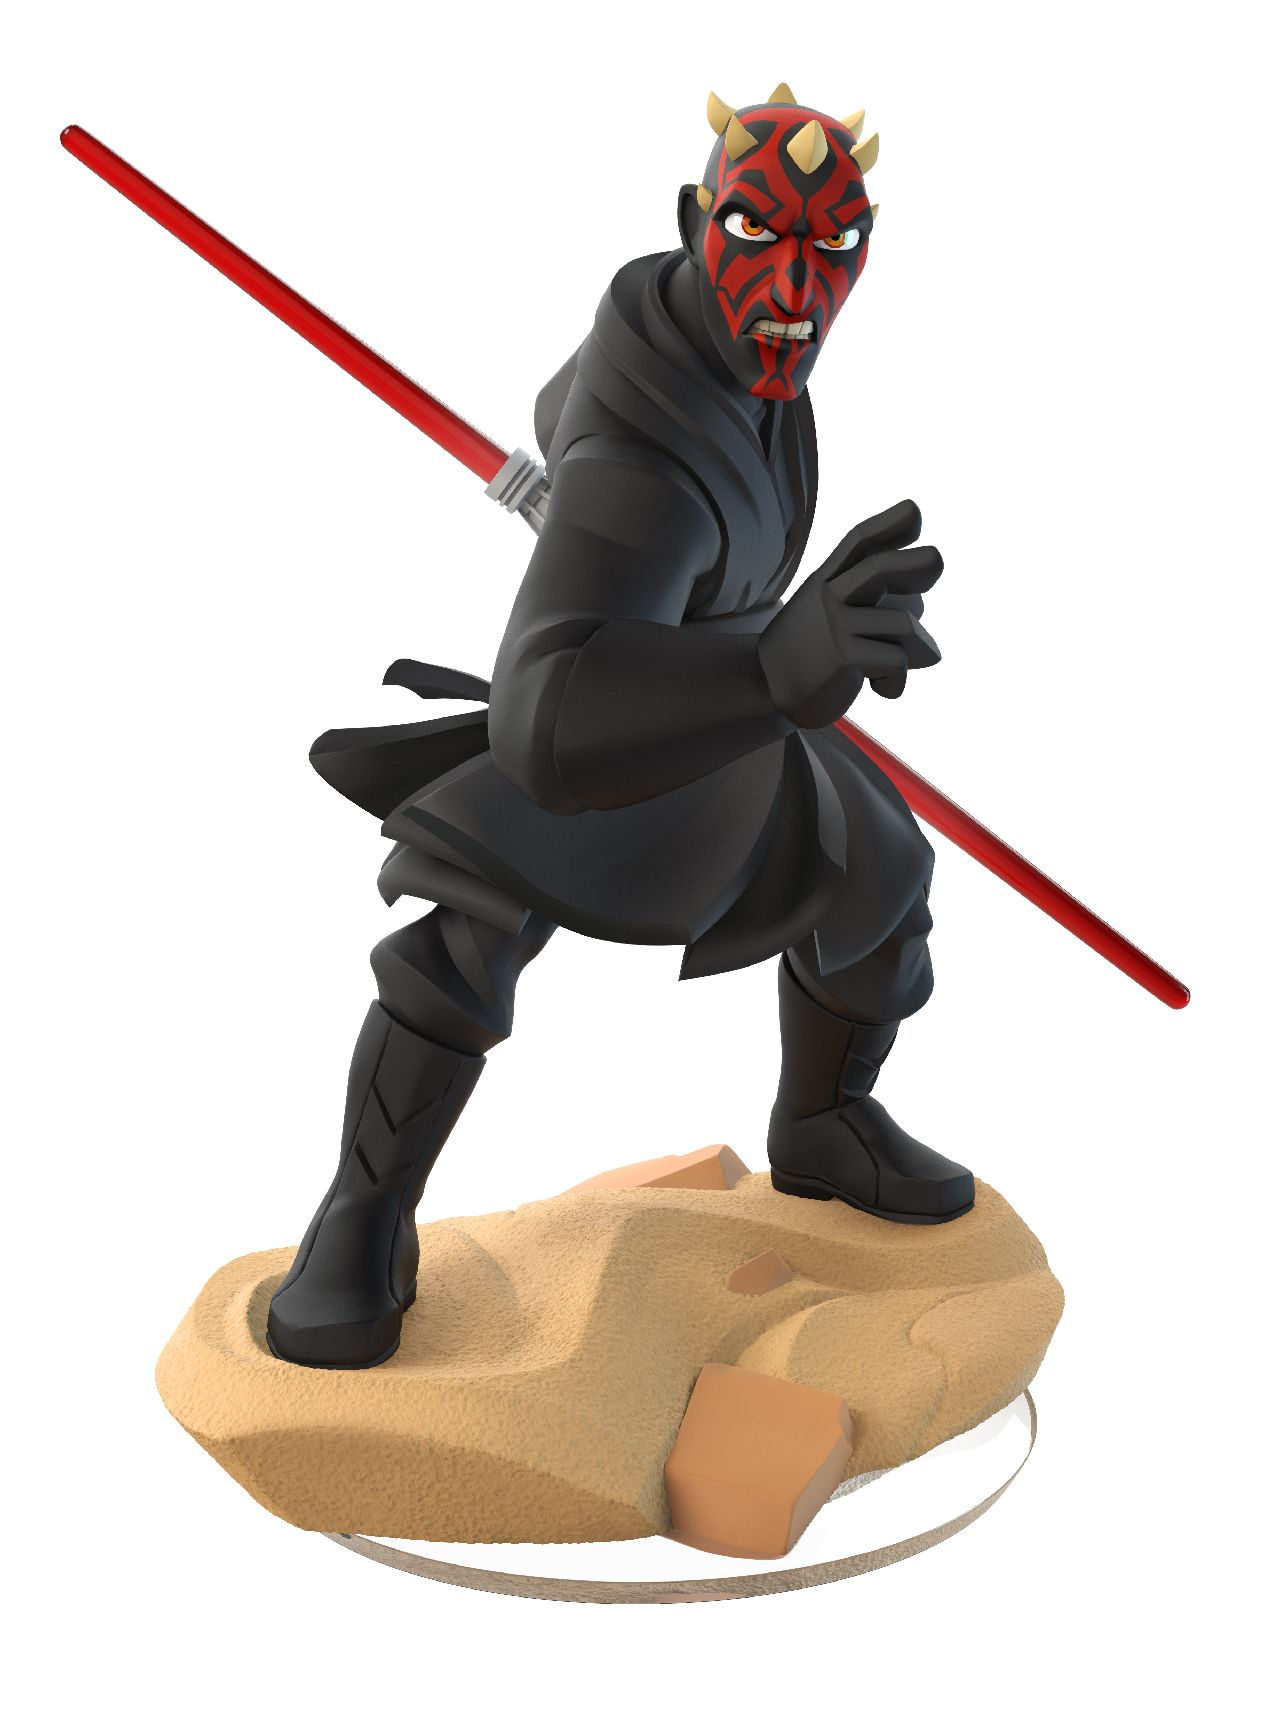 Disney Infinity 3.0 Darth Maul